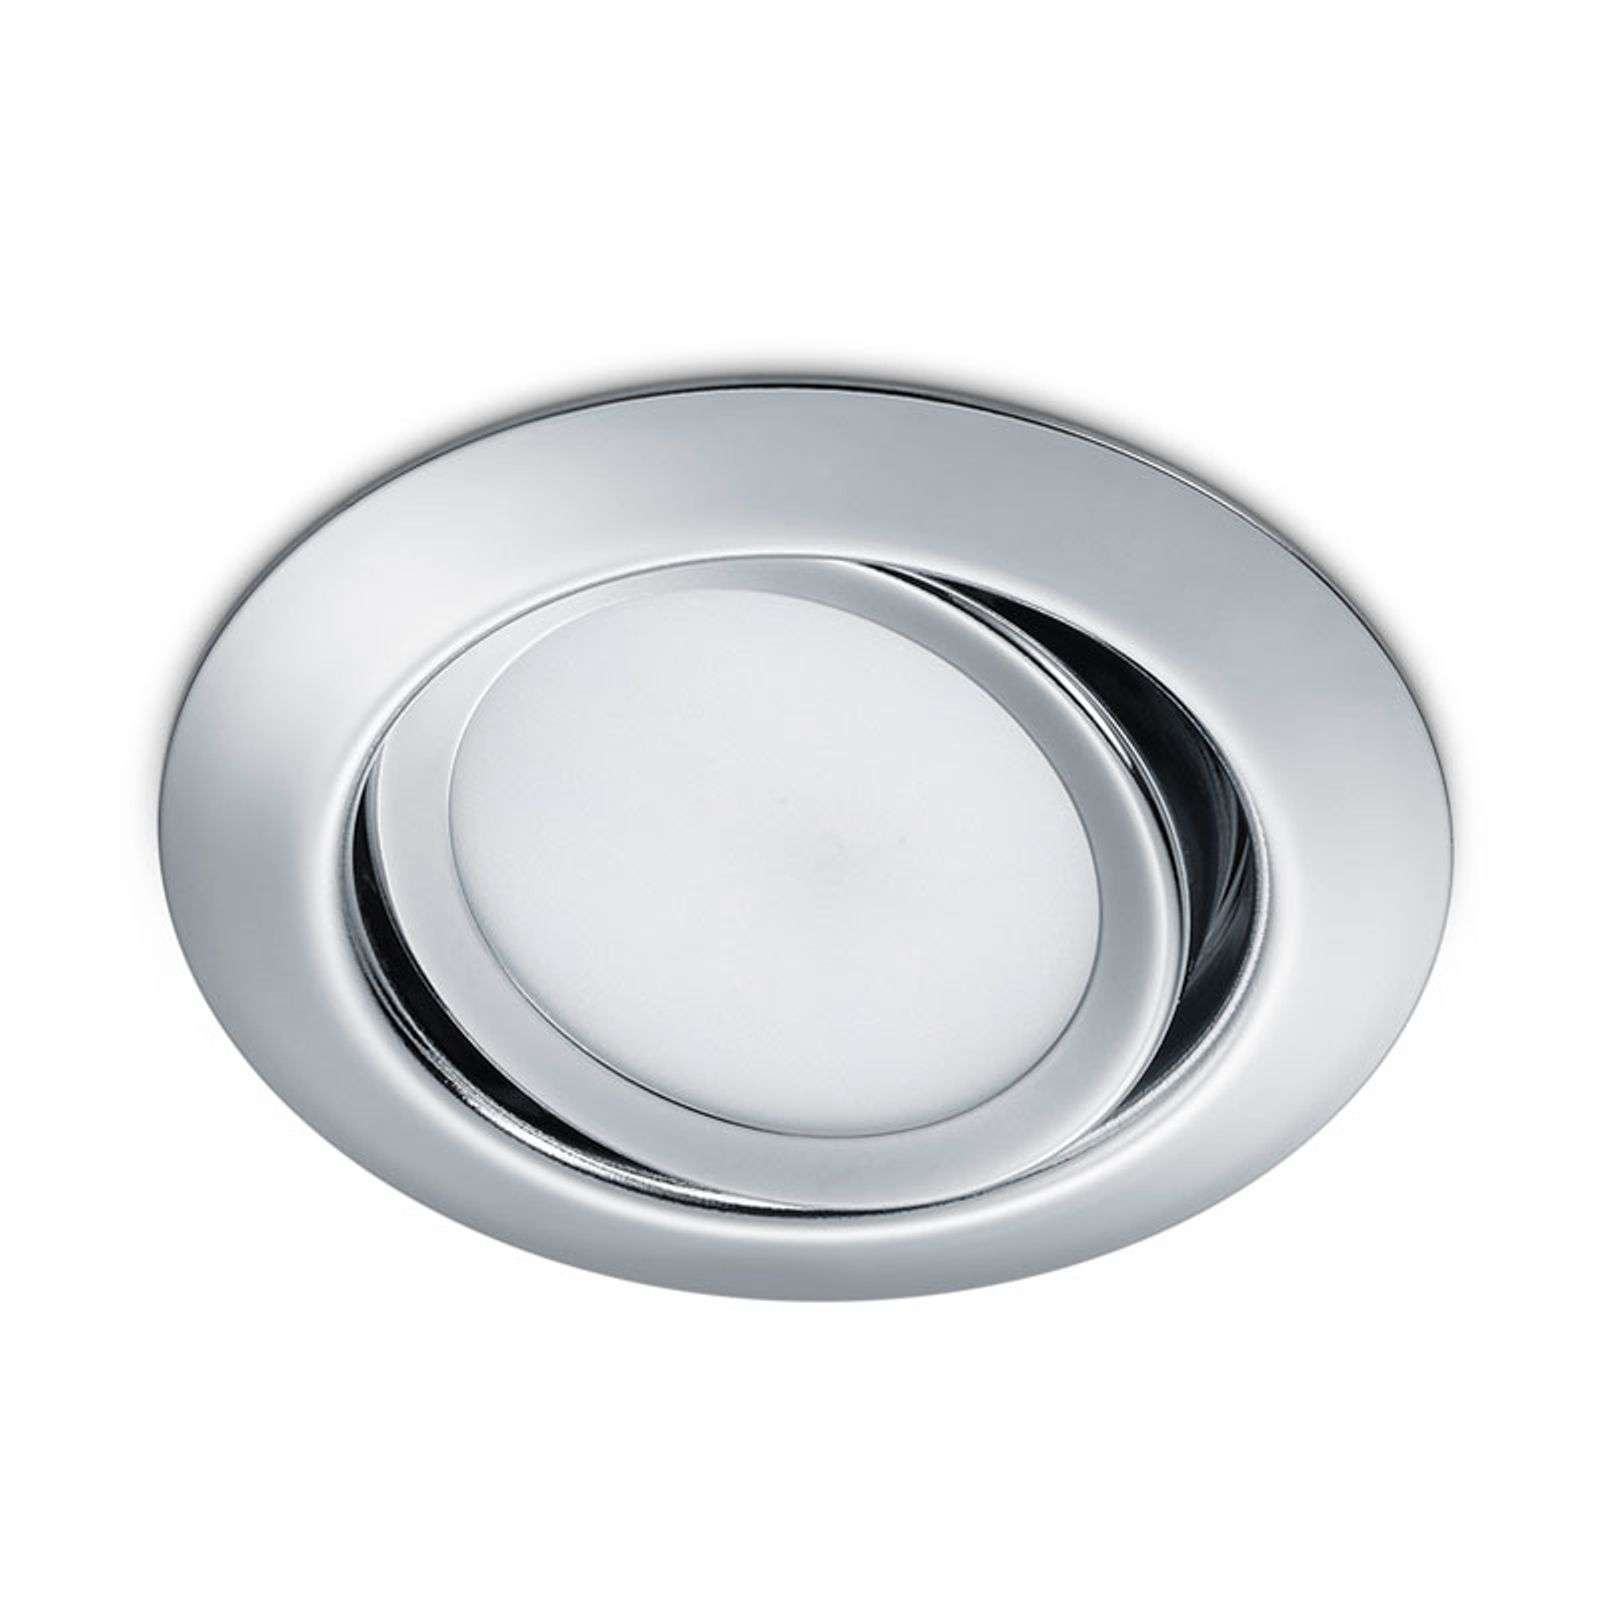 Downlight LED rotondo Rila, cromo